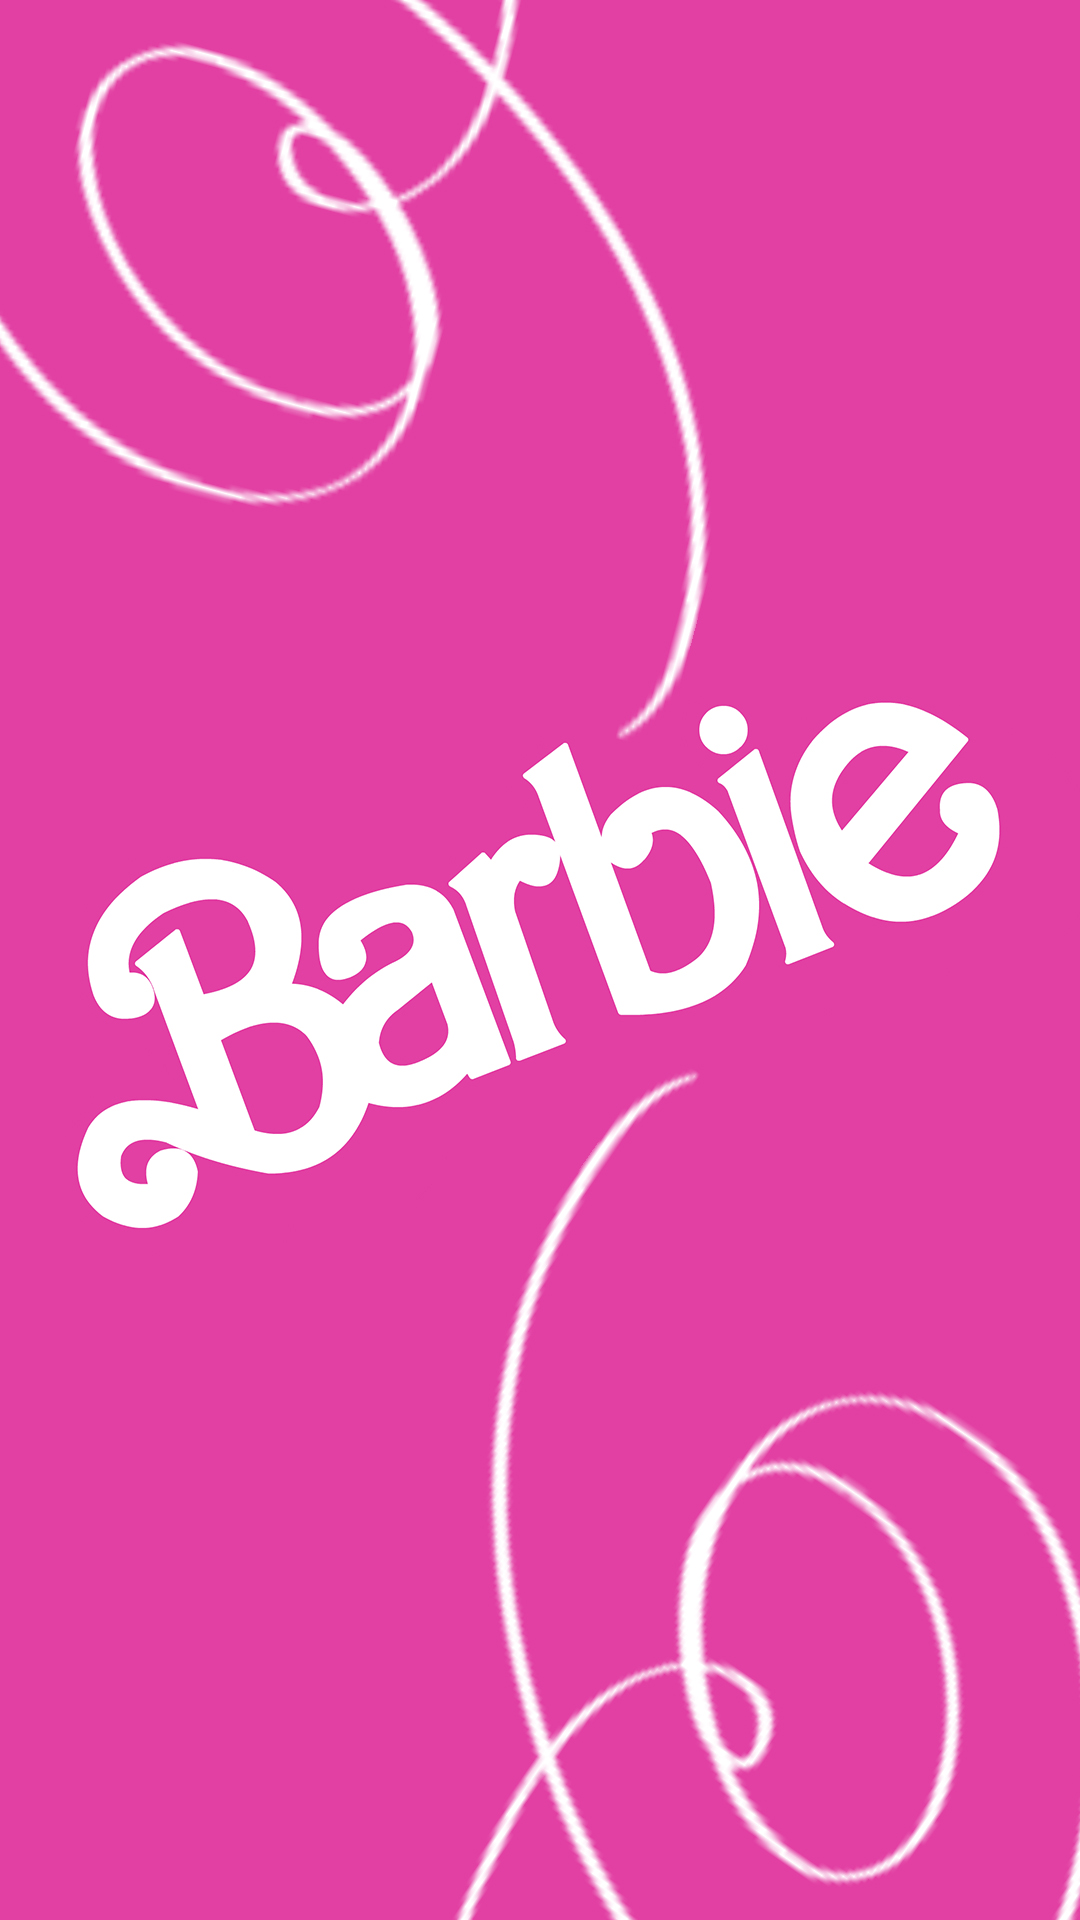 Barbie Logo Wallpaper .